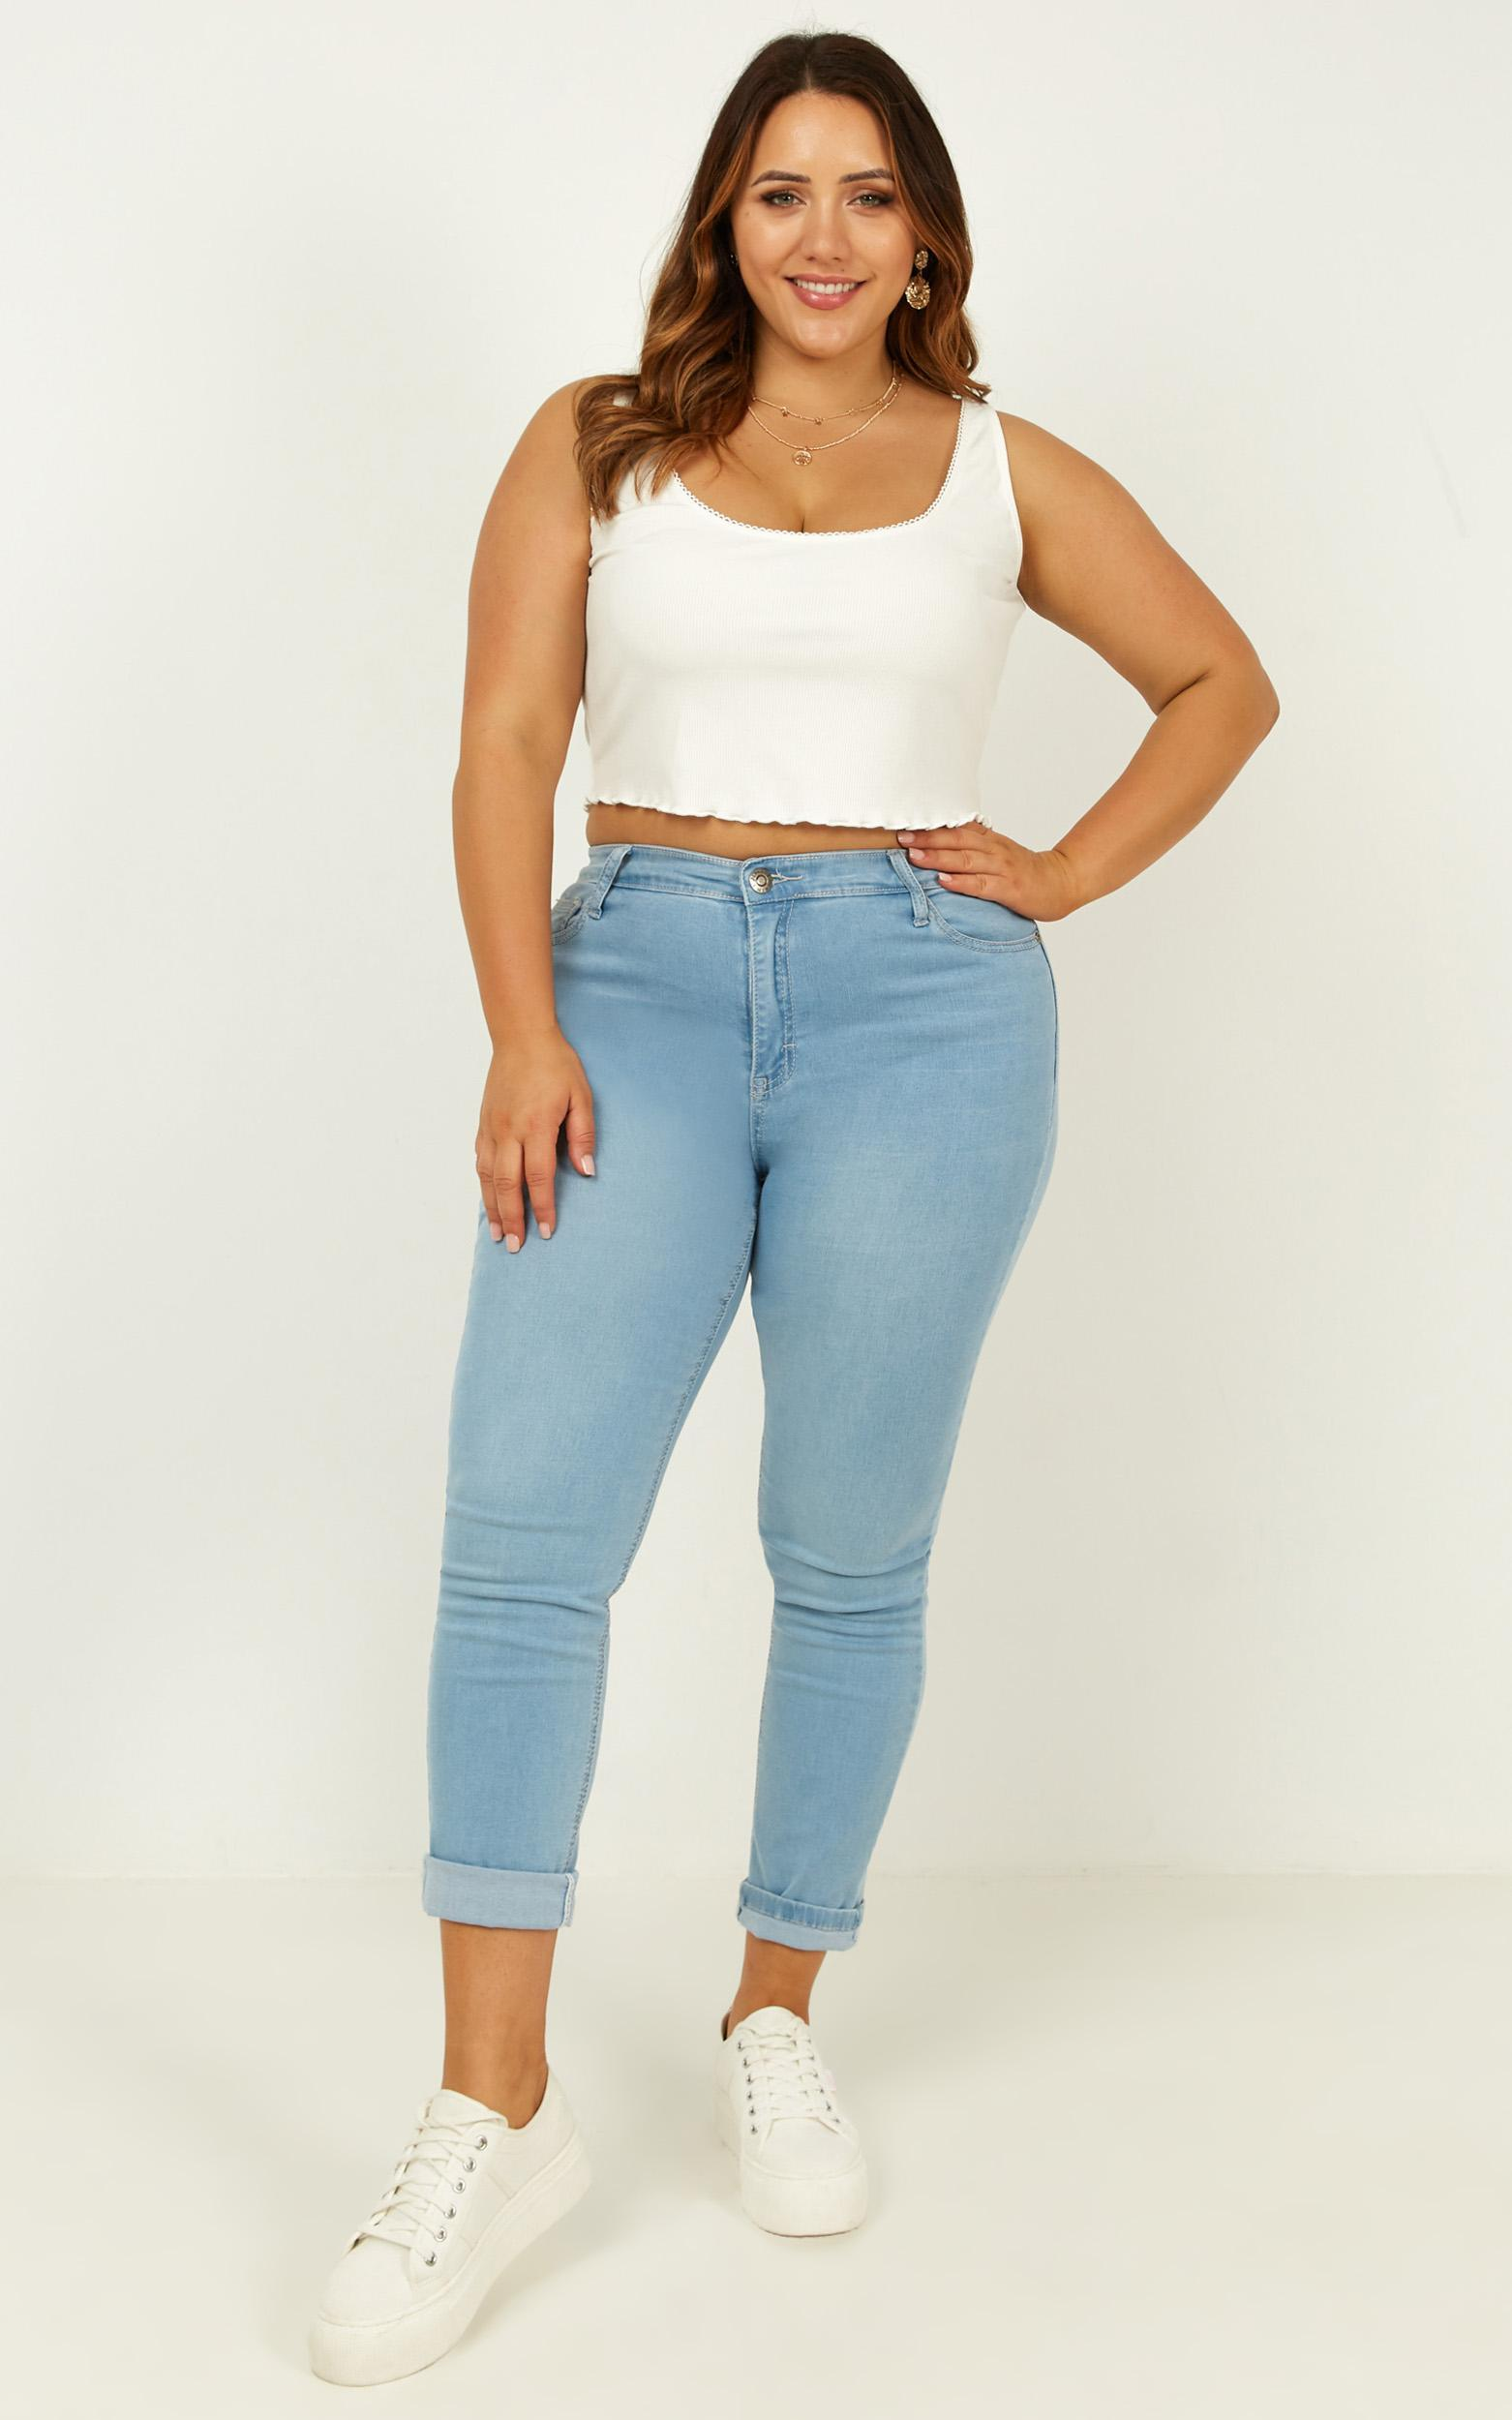 Finding Sunshine top in white - 20 (XXXXL), White, hi-res image number null